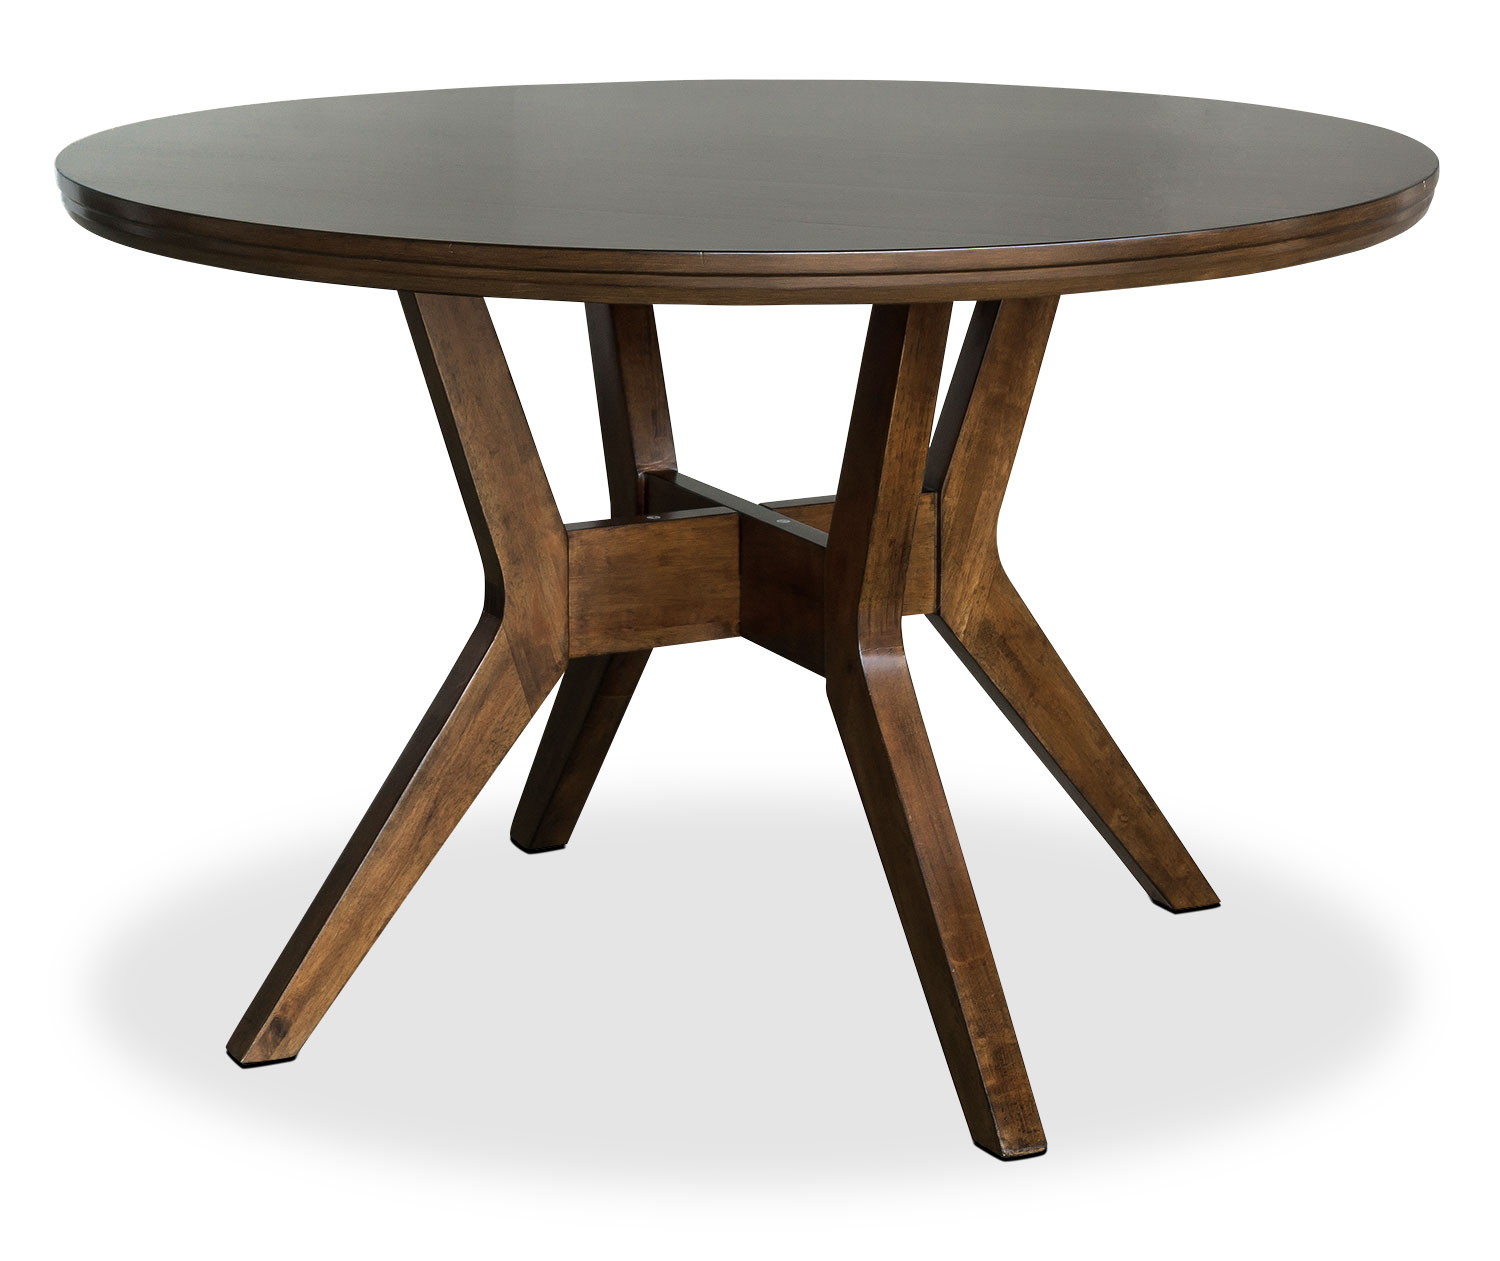 round dining table - photo #35